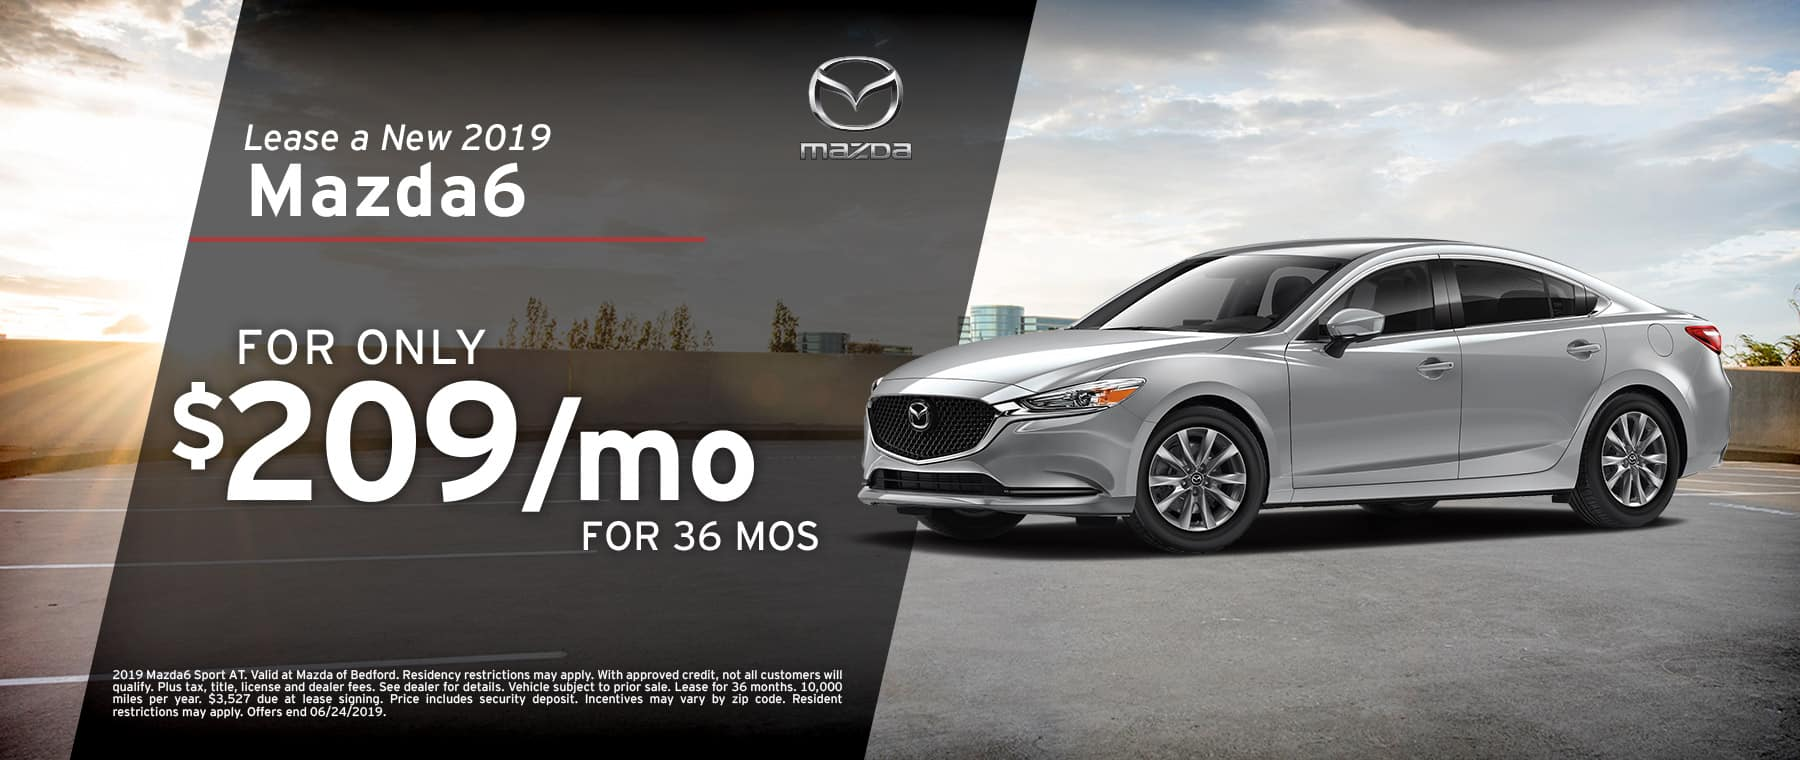 New Mazda6 Lease Offer